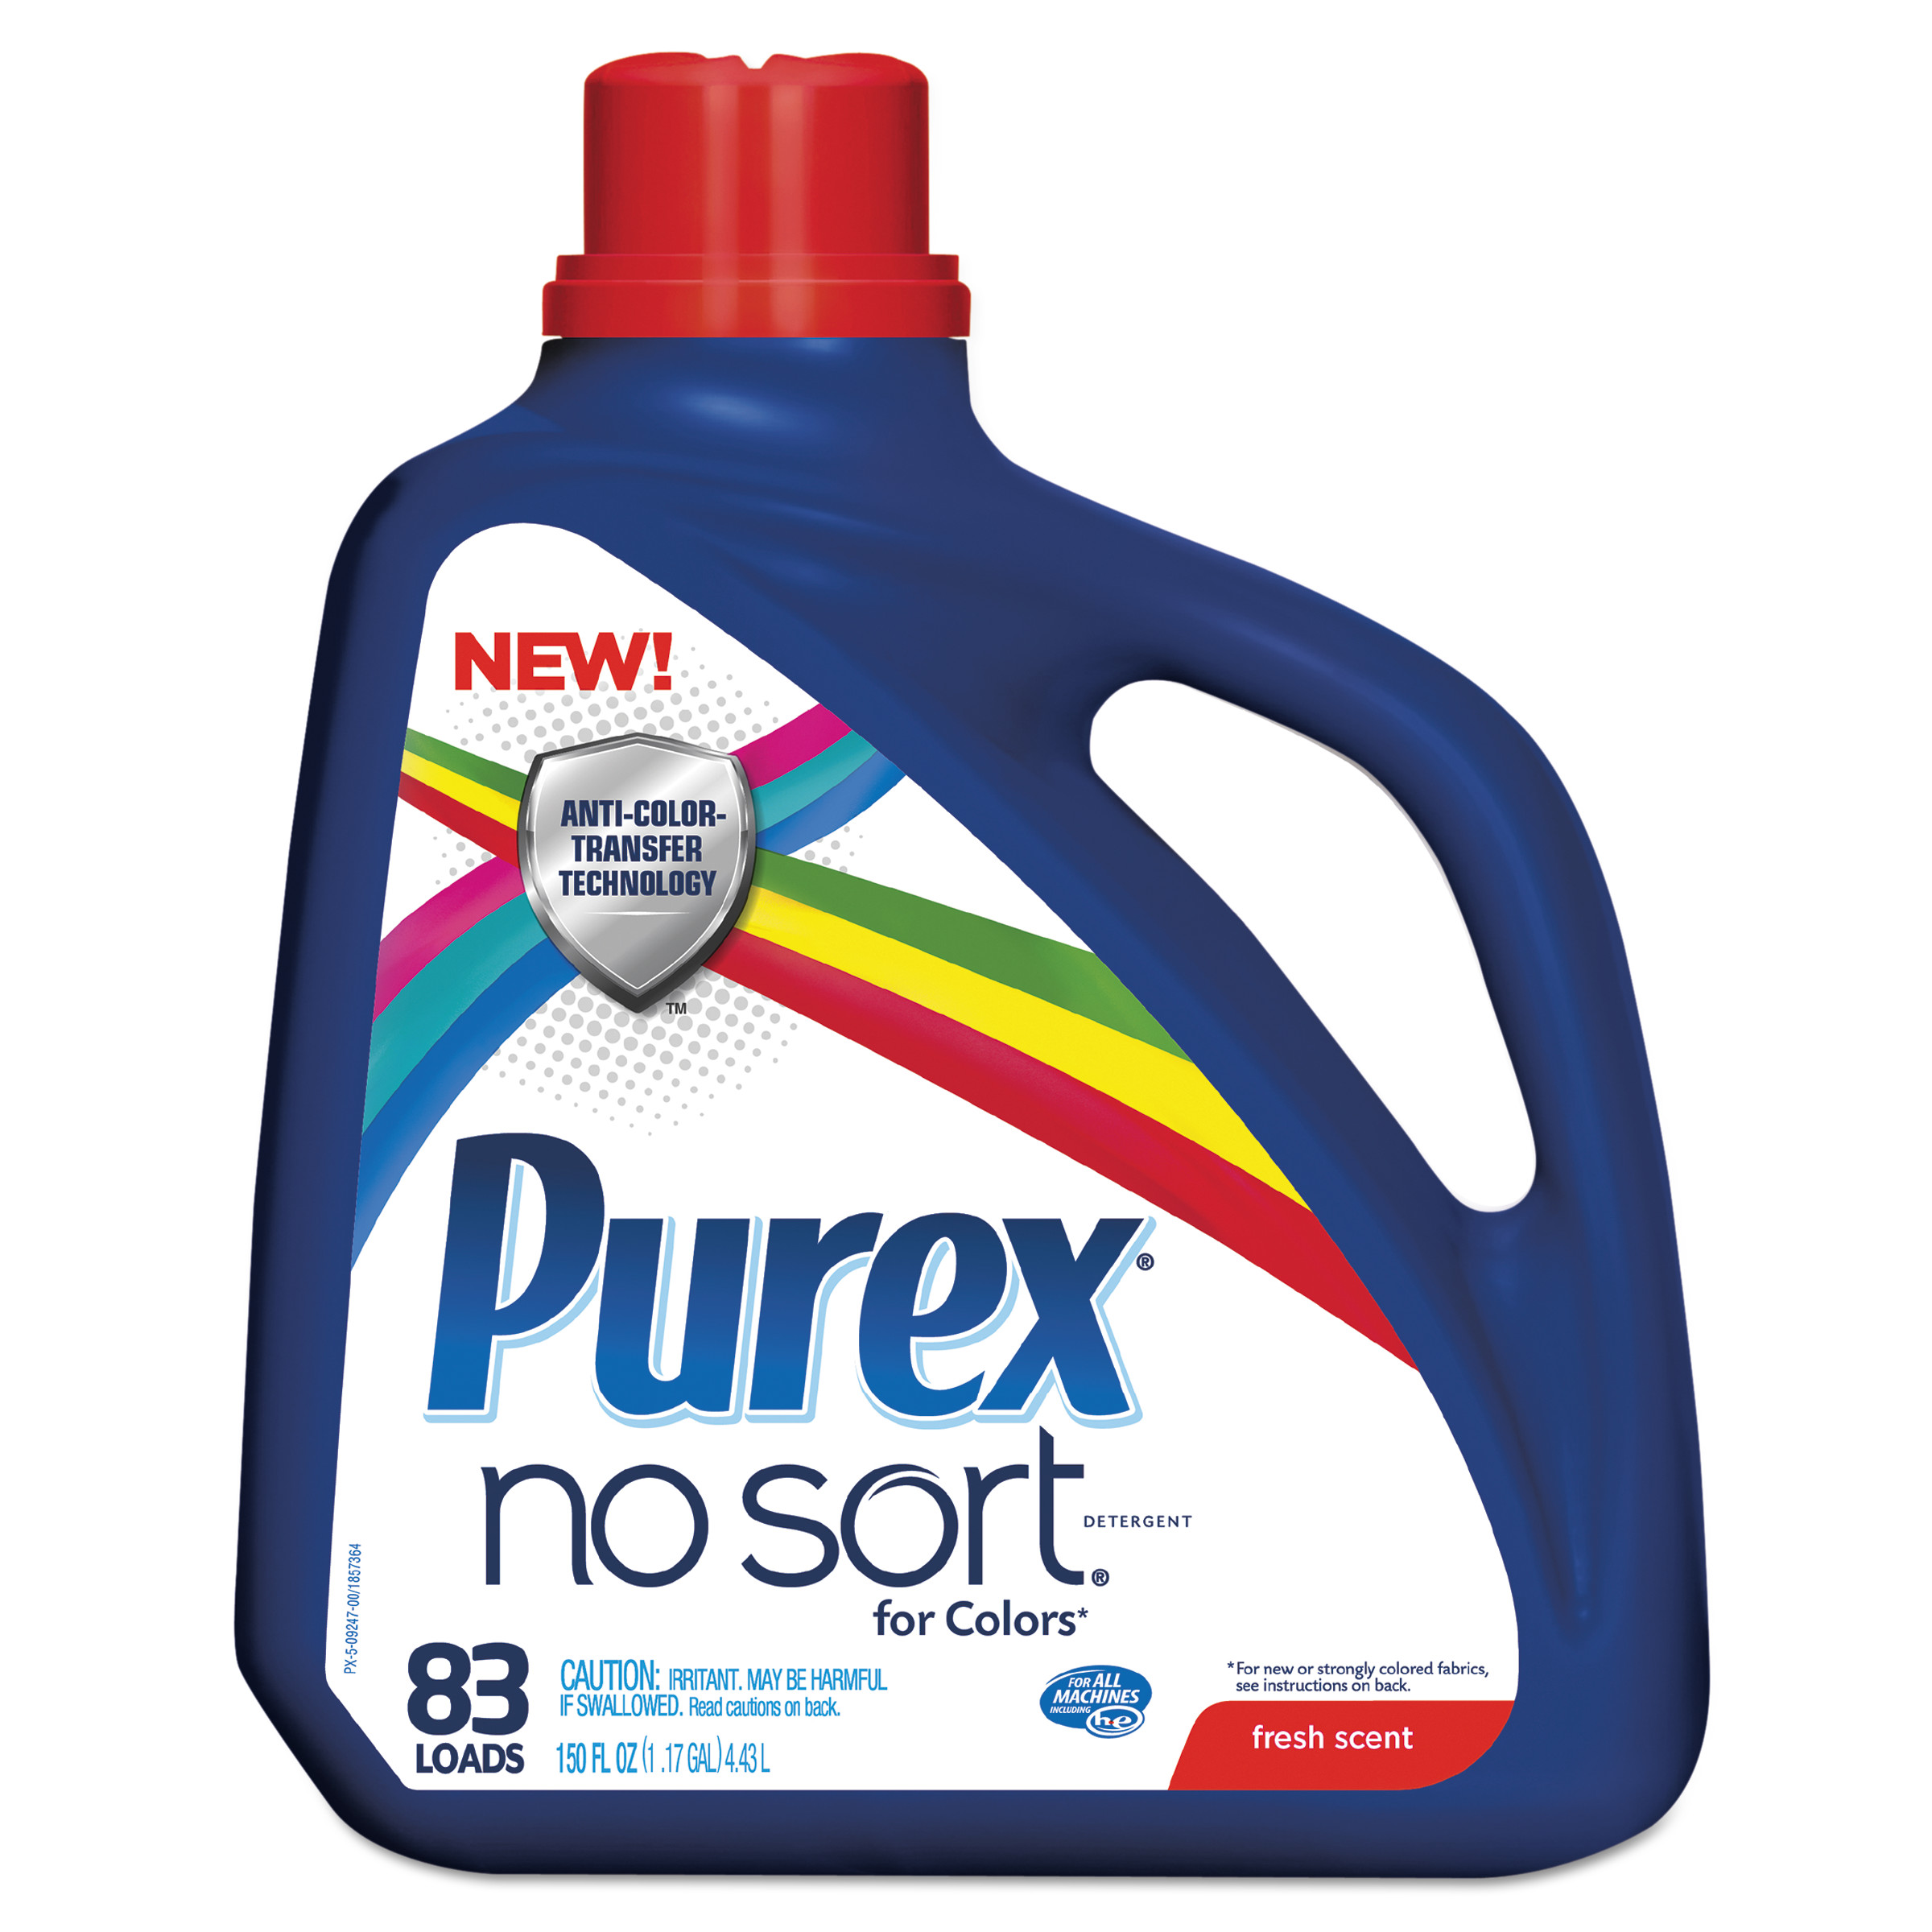 Purex No Sort Liquid Laundry Detergent, Fresh Scent, 150 oz Bottle